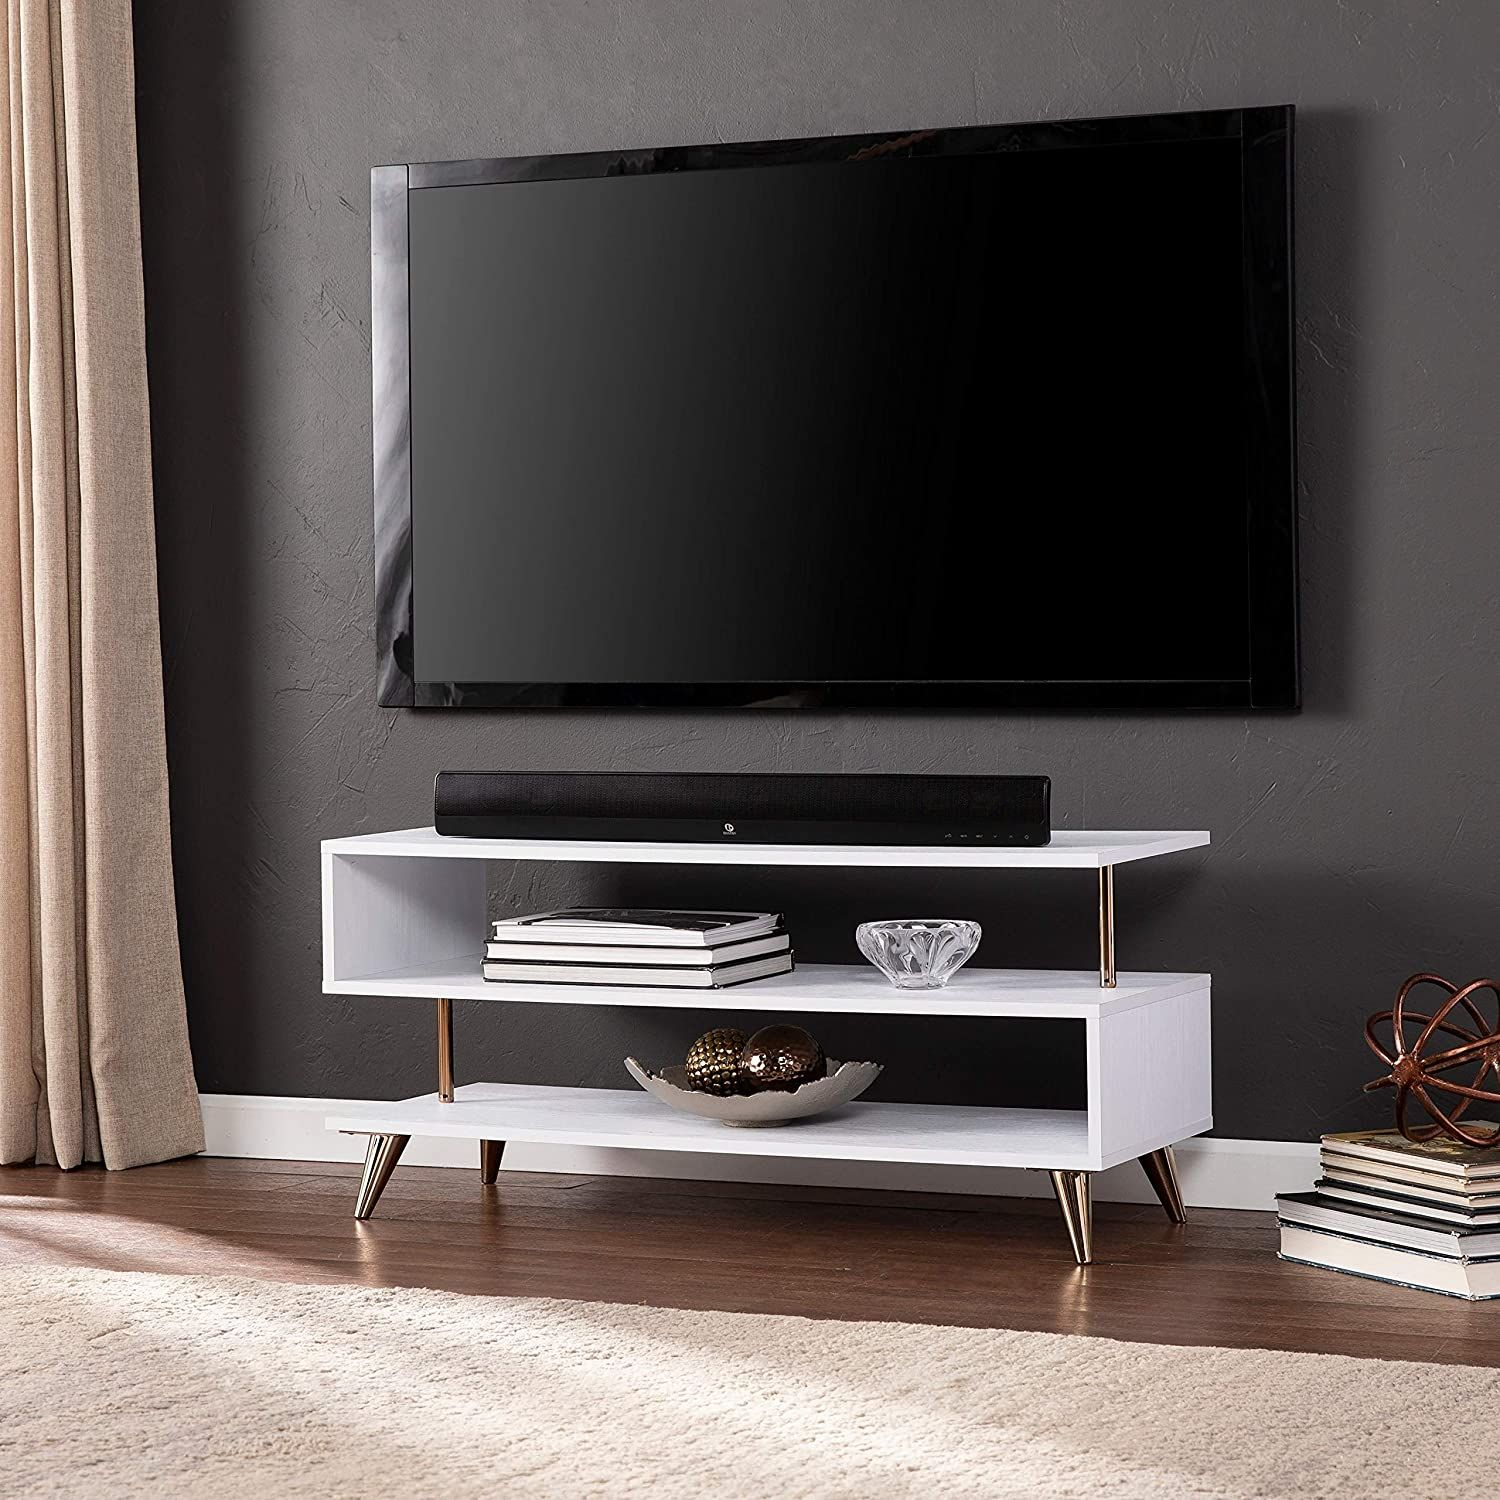 Low Profile Tv Stand White Modern Contemporary Iron Plastic